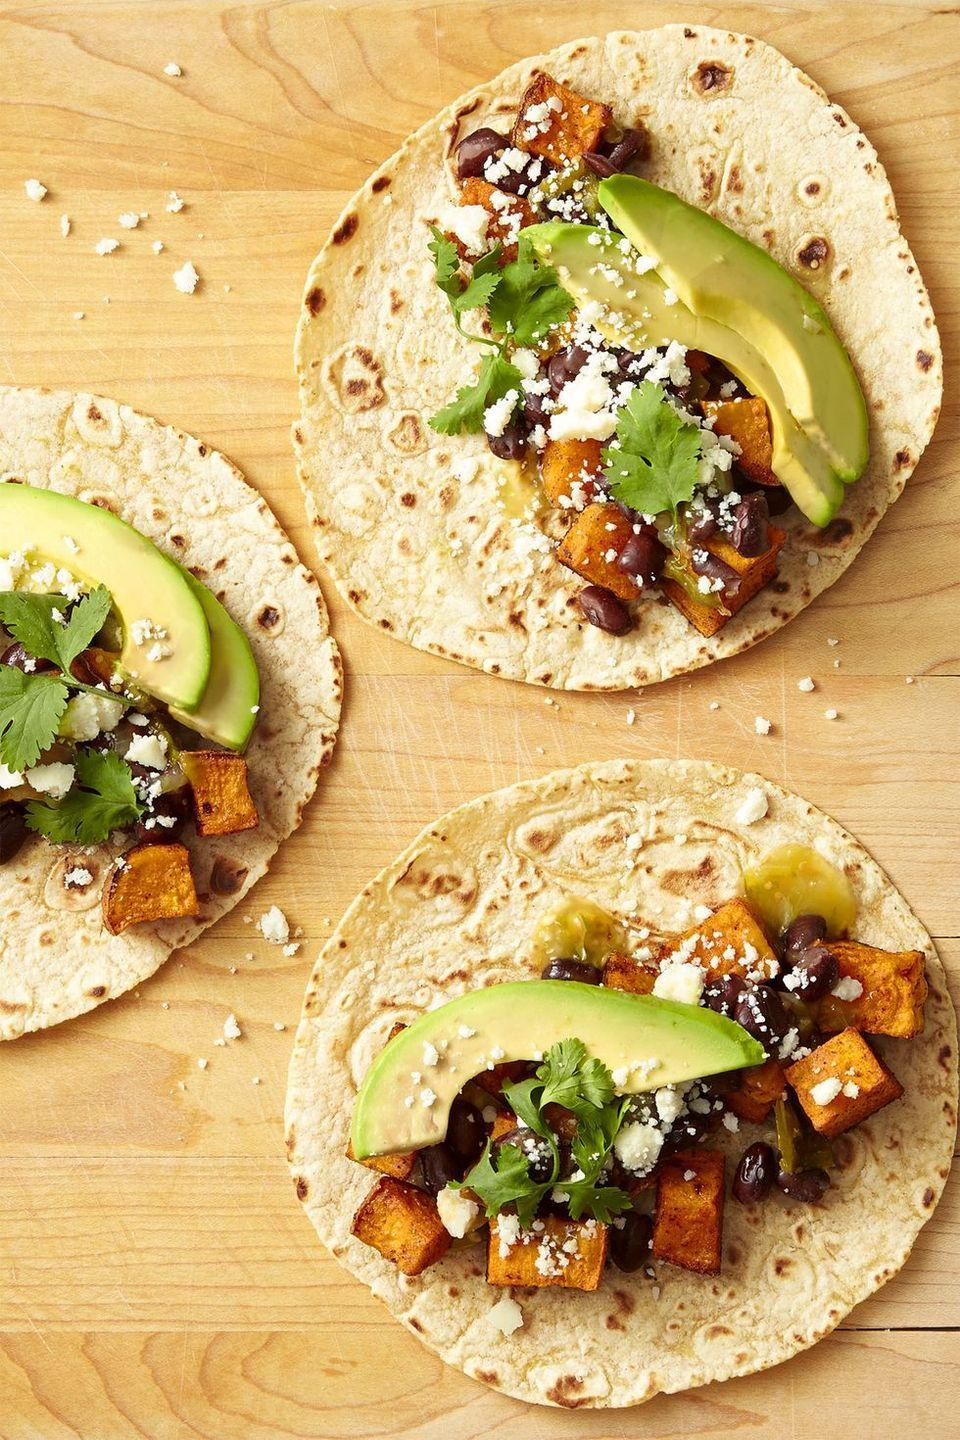 """<p>Spicy sweet potatoes and black beans make the ultimate vegetarian taco filling. We promise — you won't miss the beef.</p><p><em><a href=""""https://www.goodhousekeeping.com/food-recipes/easy/a44227/sweet-potato-avocado-black-bean-tacos-recipe/"""" rel=""""nofollow noopener"""" target=""""_blank"""" data-ylk=""""slk:Get the recipe for Sweet Potato, Avocado and Black Bean Tacos »"""" class=""""link rapid-noclick-resp"""">Get the recipe for Sweet Potato, Avocado and Black Bean Tacos »</a></em></p>"""